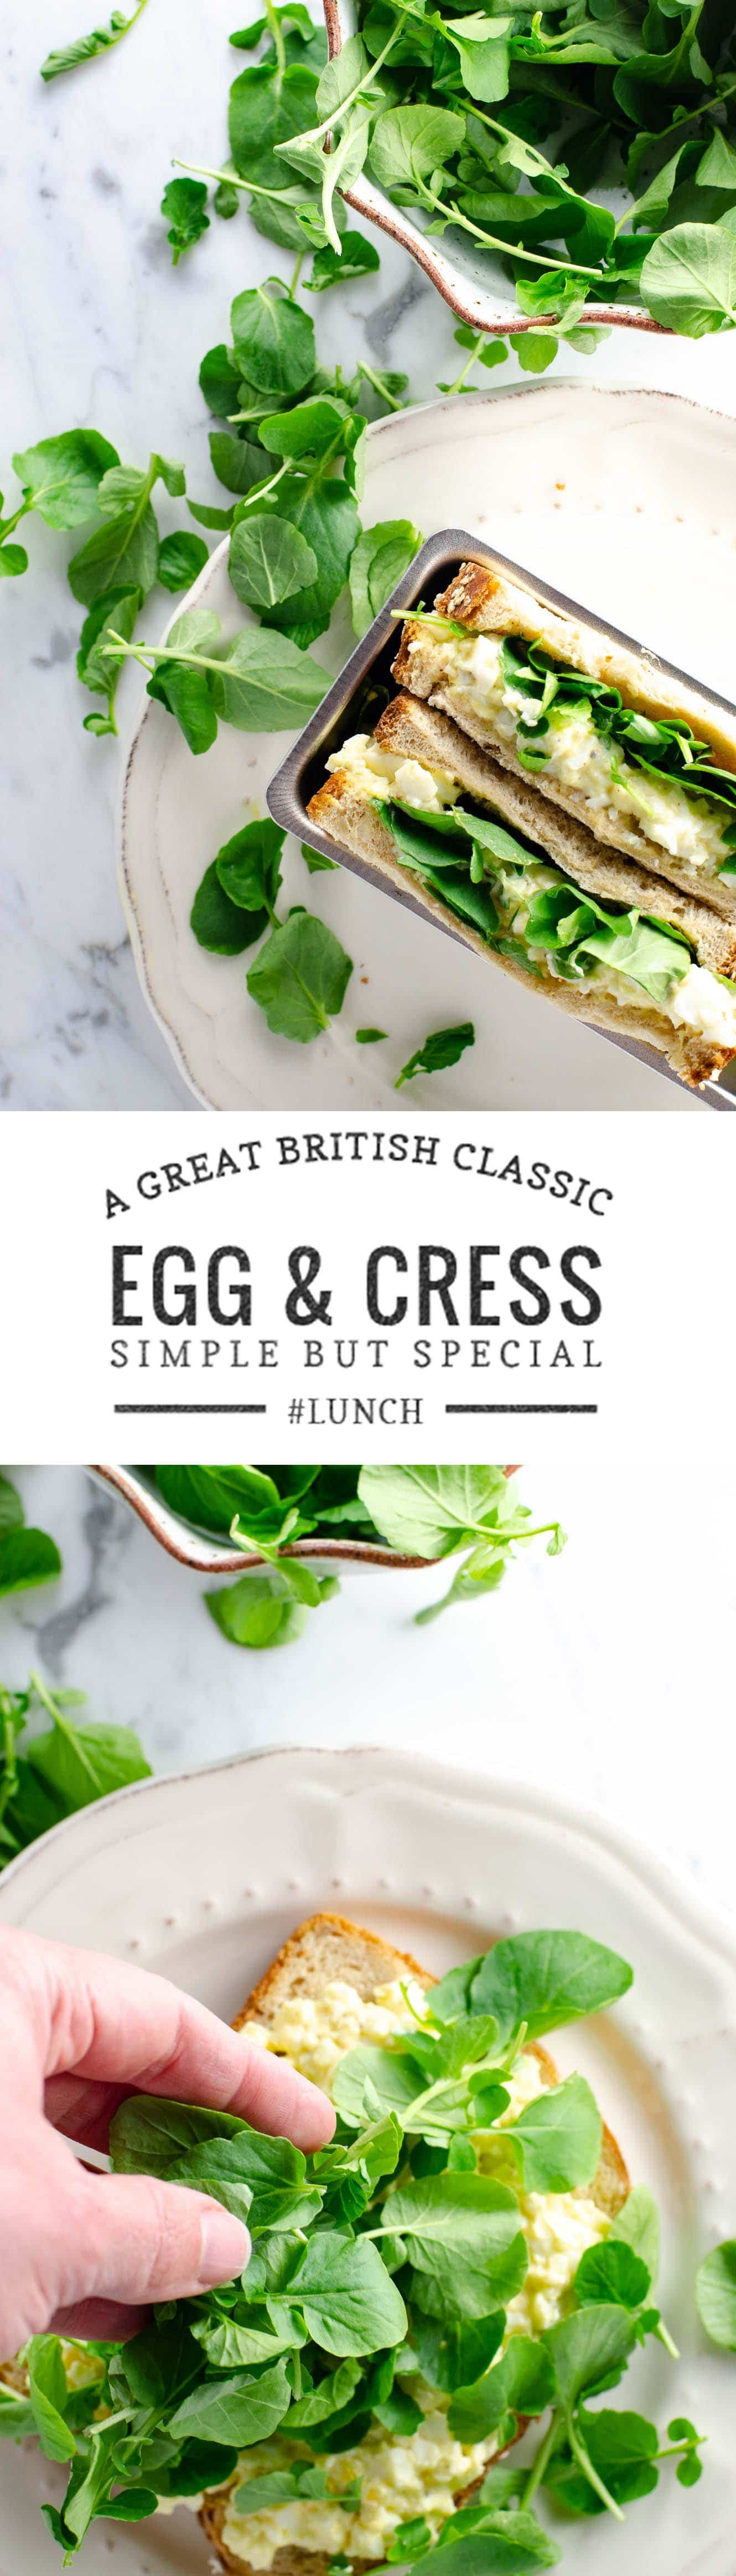 A simple egg and watercress sandwich (alias Egg & Cress) is a British classic that's simple but special.